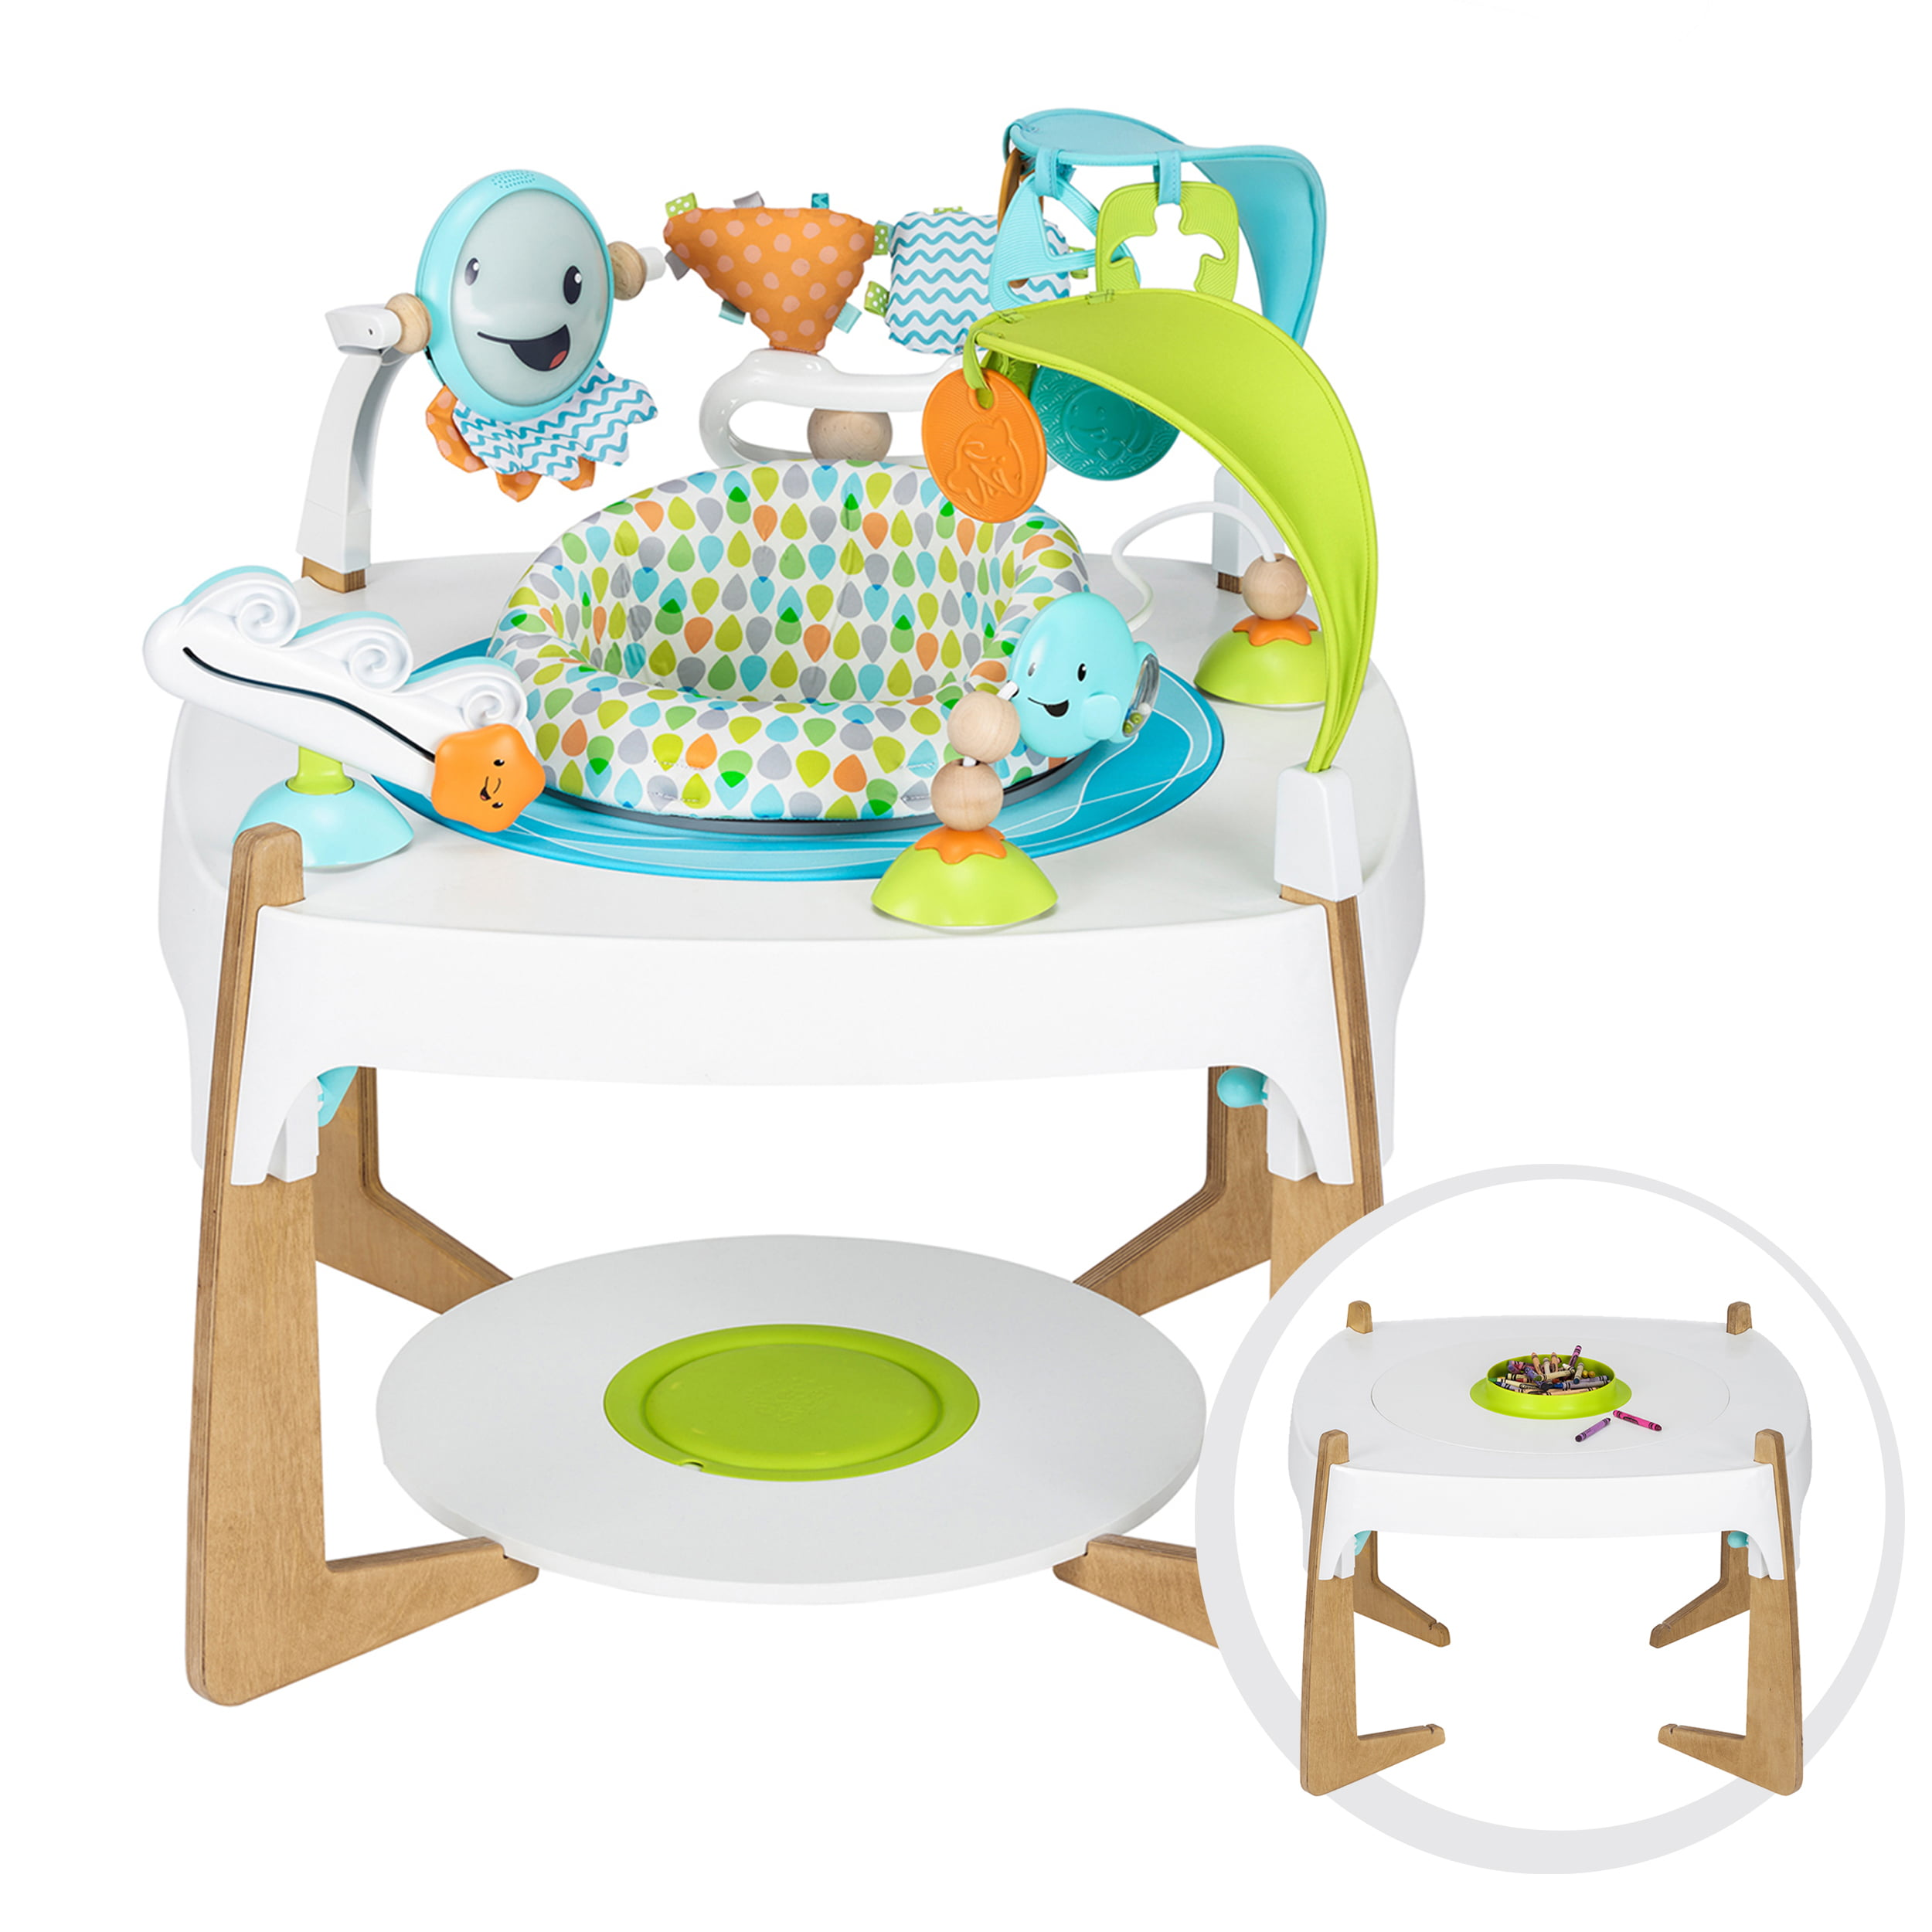 Evenflo ExerSaucer 2-in-1 Activity Center + Art Table, Gleeful Sea by Exersaucer